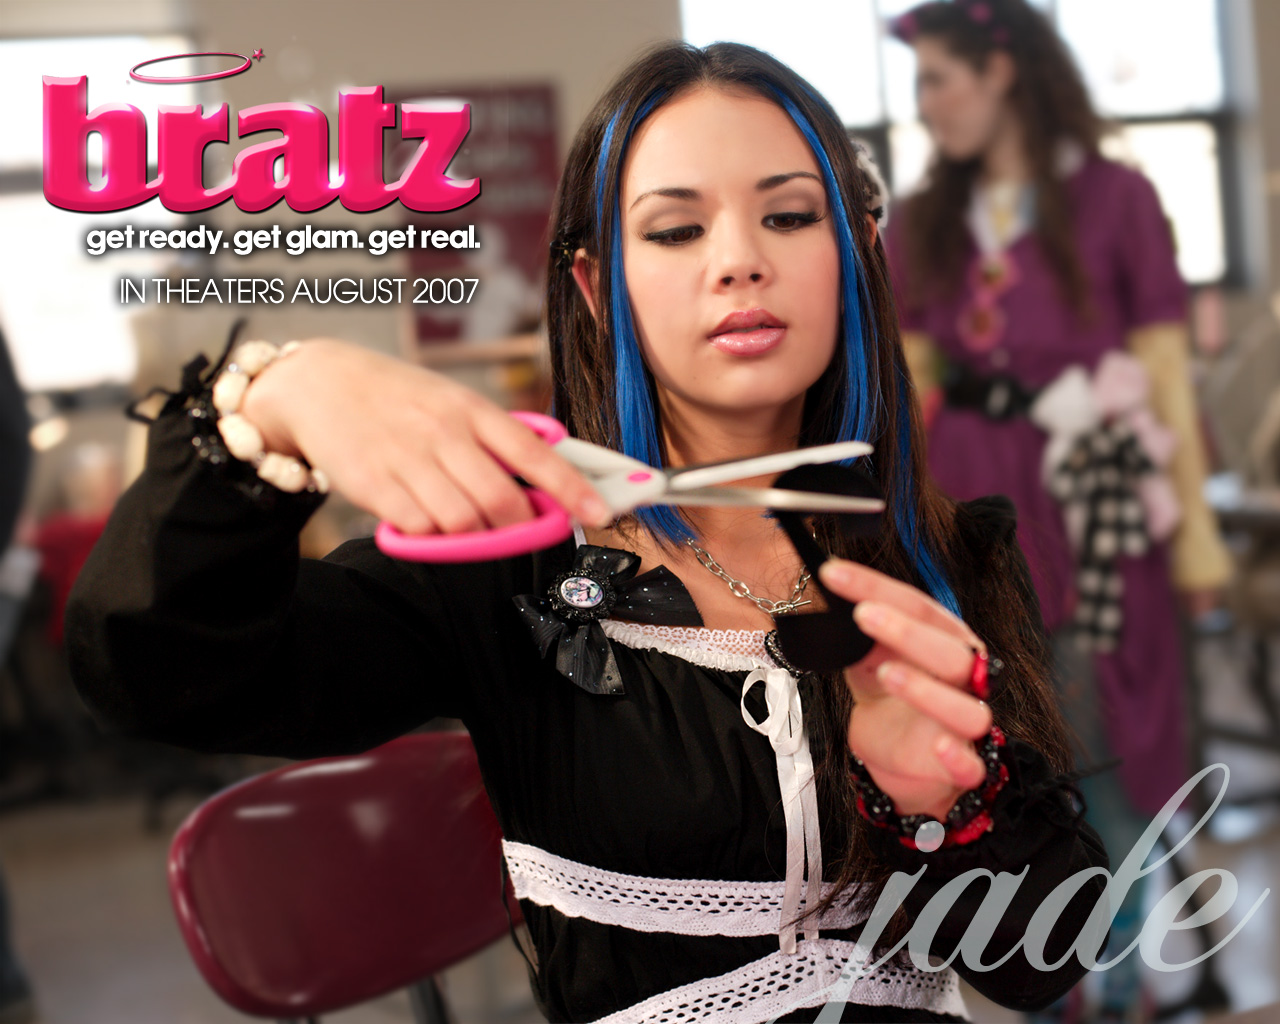 http://4.bp.blogspot.com/-p6TZlFTKm-c/TdT1AM8xsCI/AAAAAAAAAbg/0NXG6CGo-qg/s1600/Janel_Parrish_in_Bratz+_The_Movie_Wallpaper_16_1280.jpg